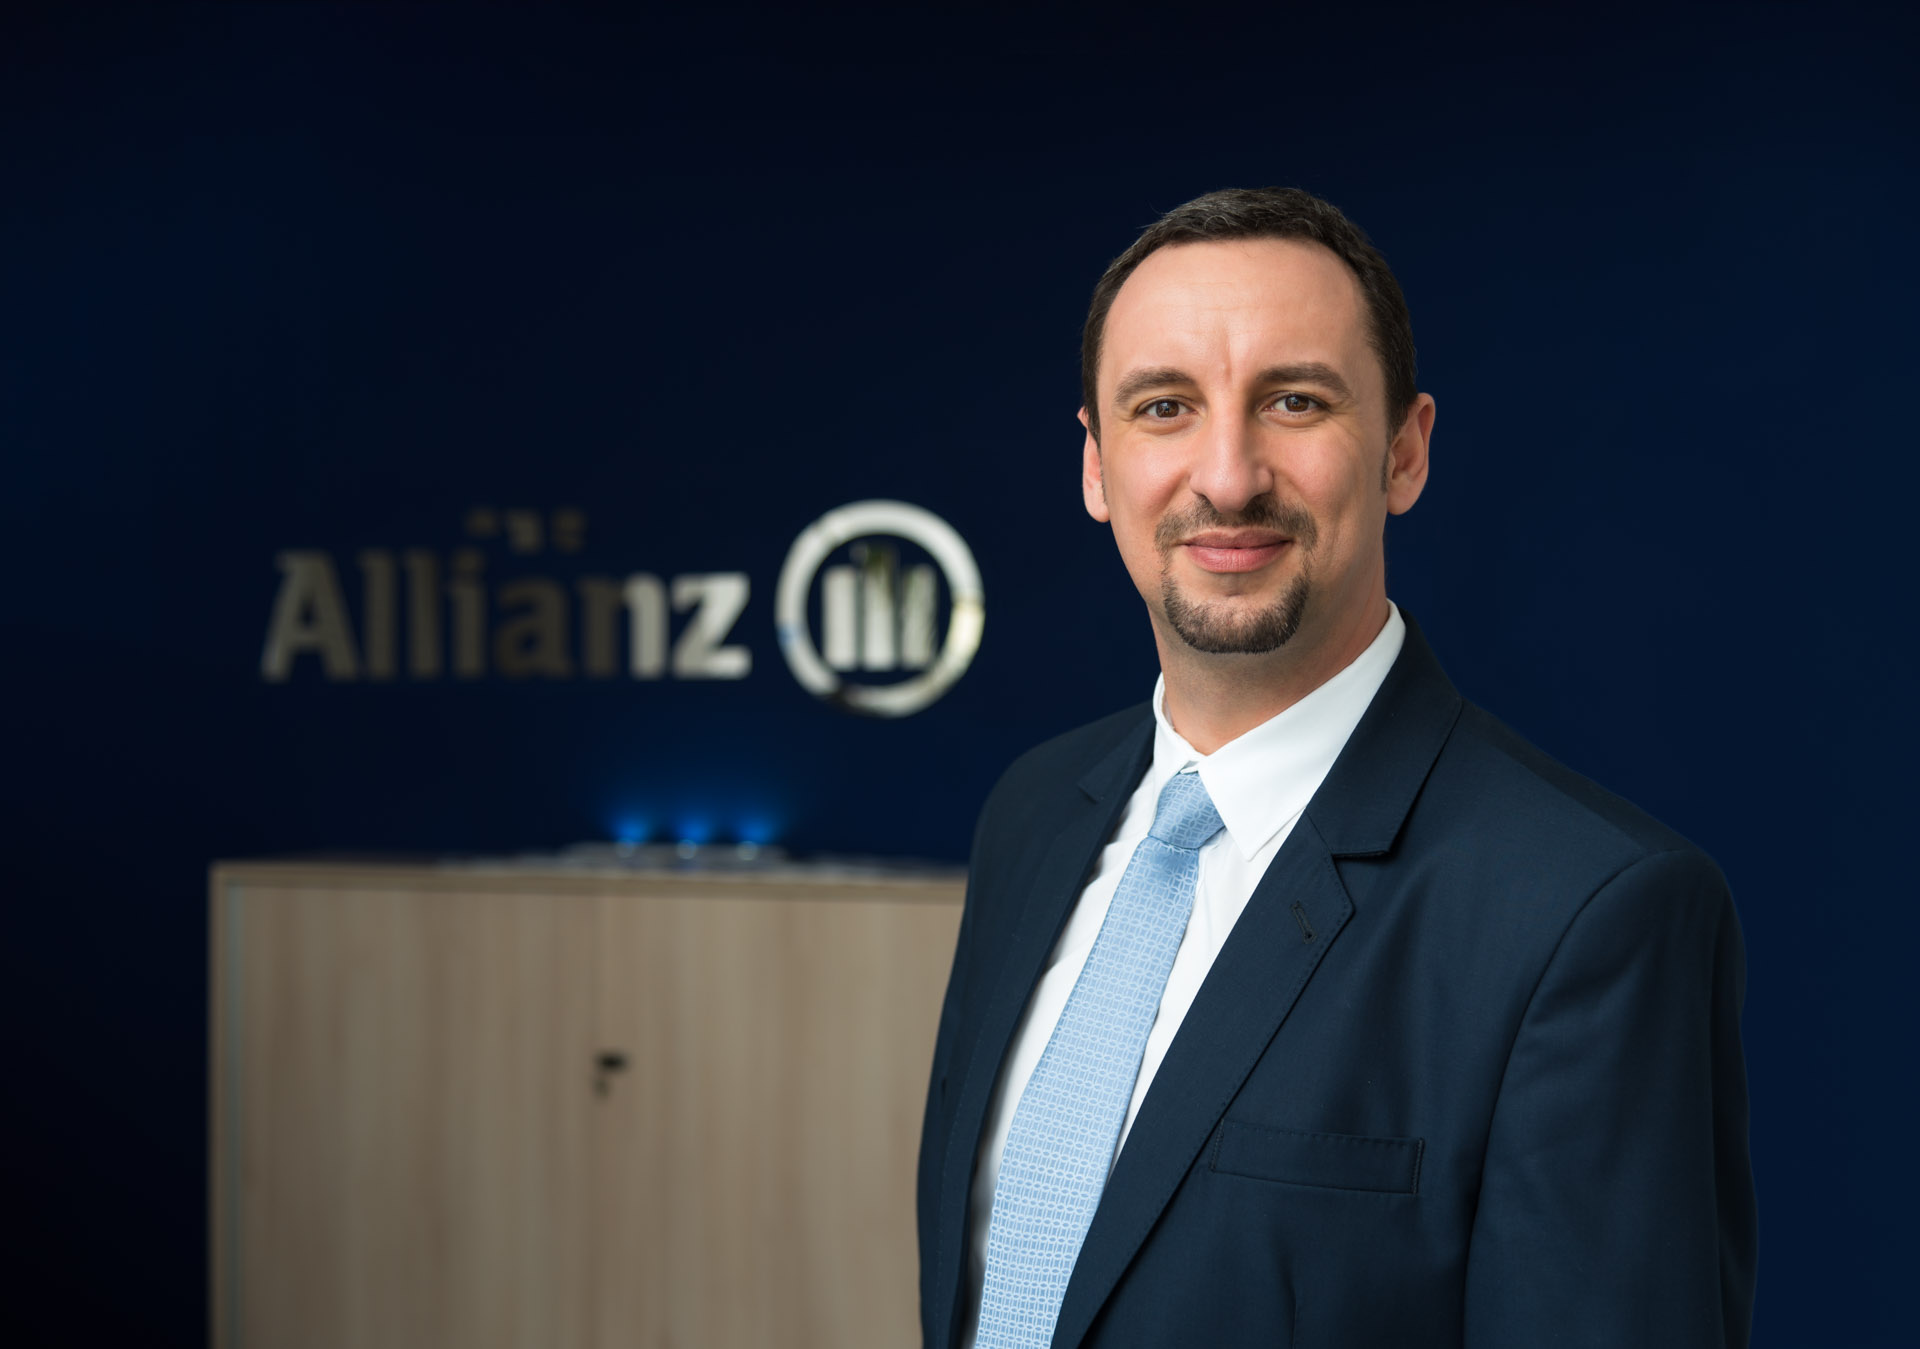 Adrian Dumbrava Hauptvertrefung Allianz Alsdorf